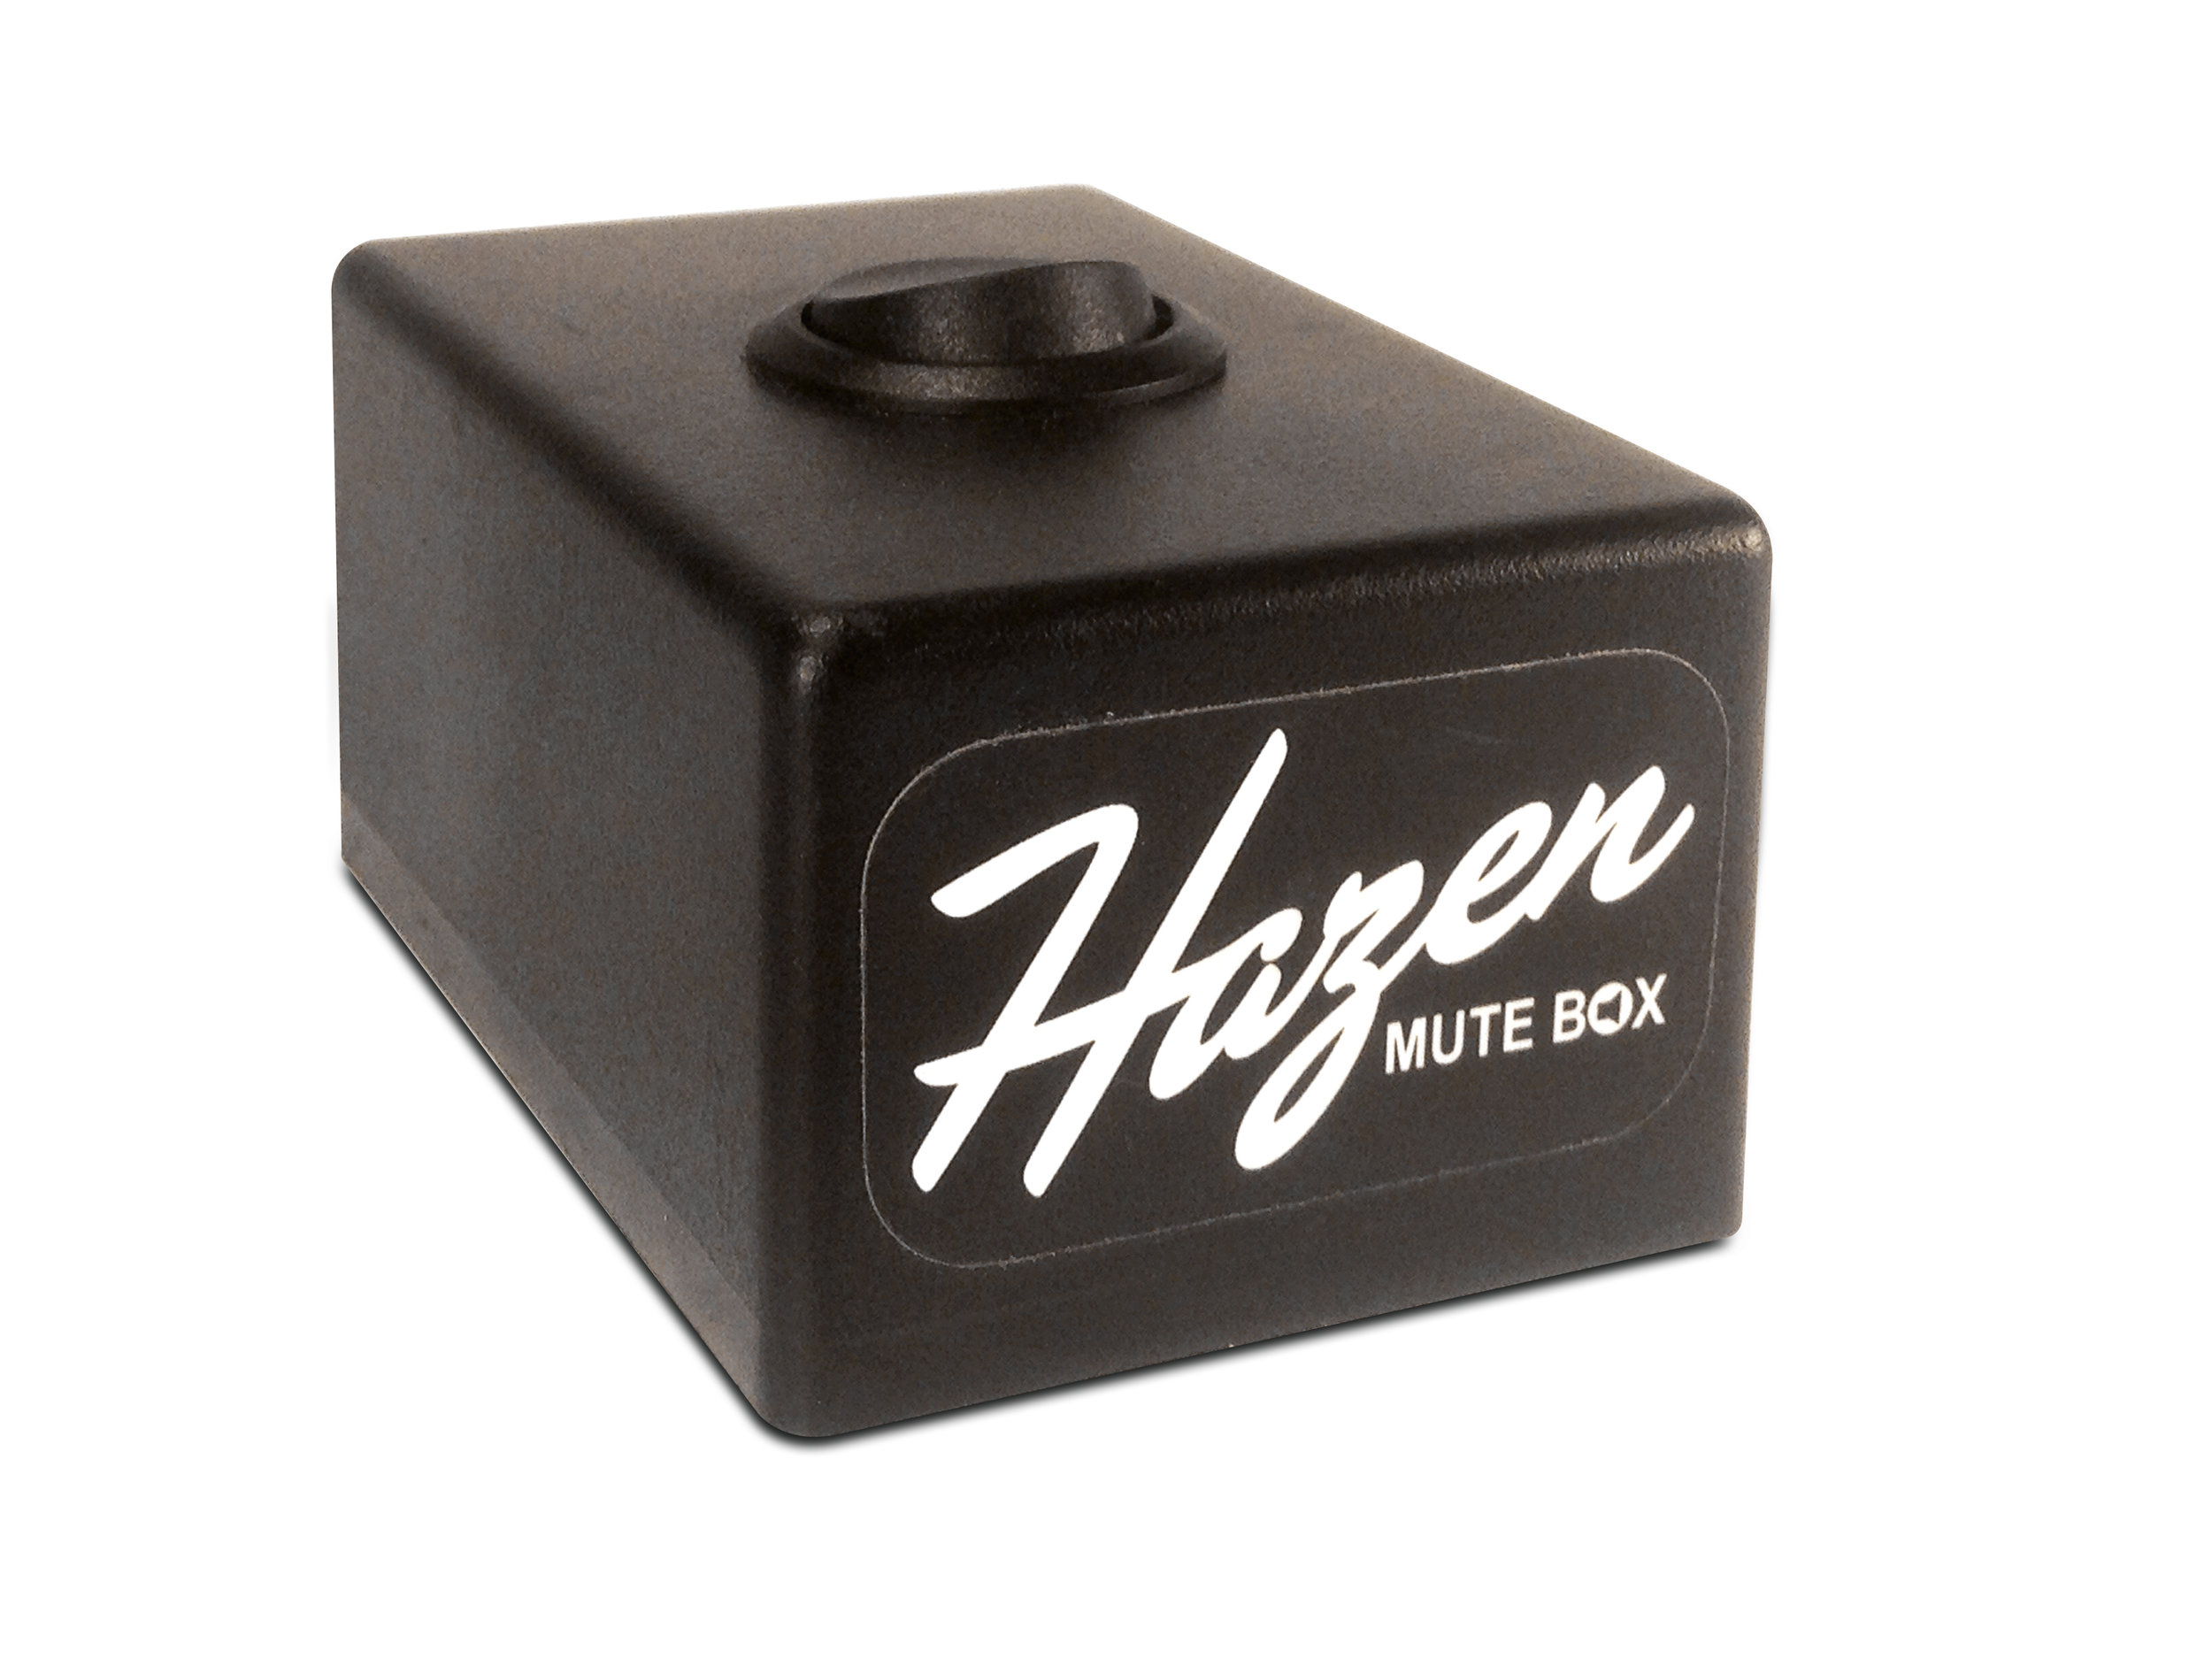 Hazen_Mutebox_Retouched_Image1.jpg